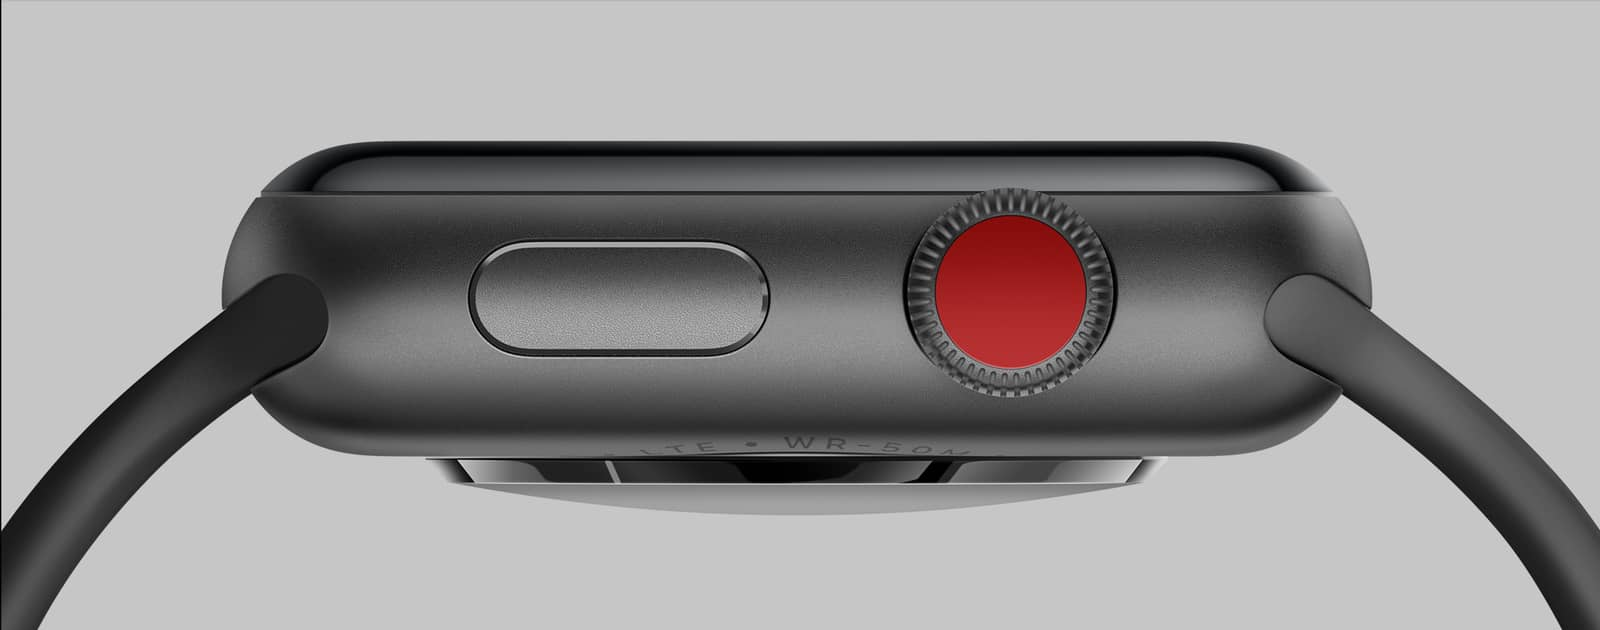 Apple Watch Saved Woman Trapped in Car